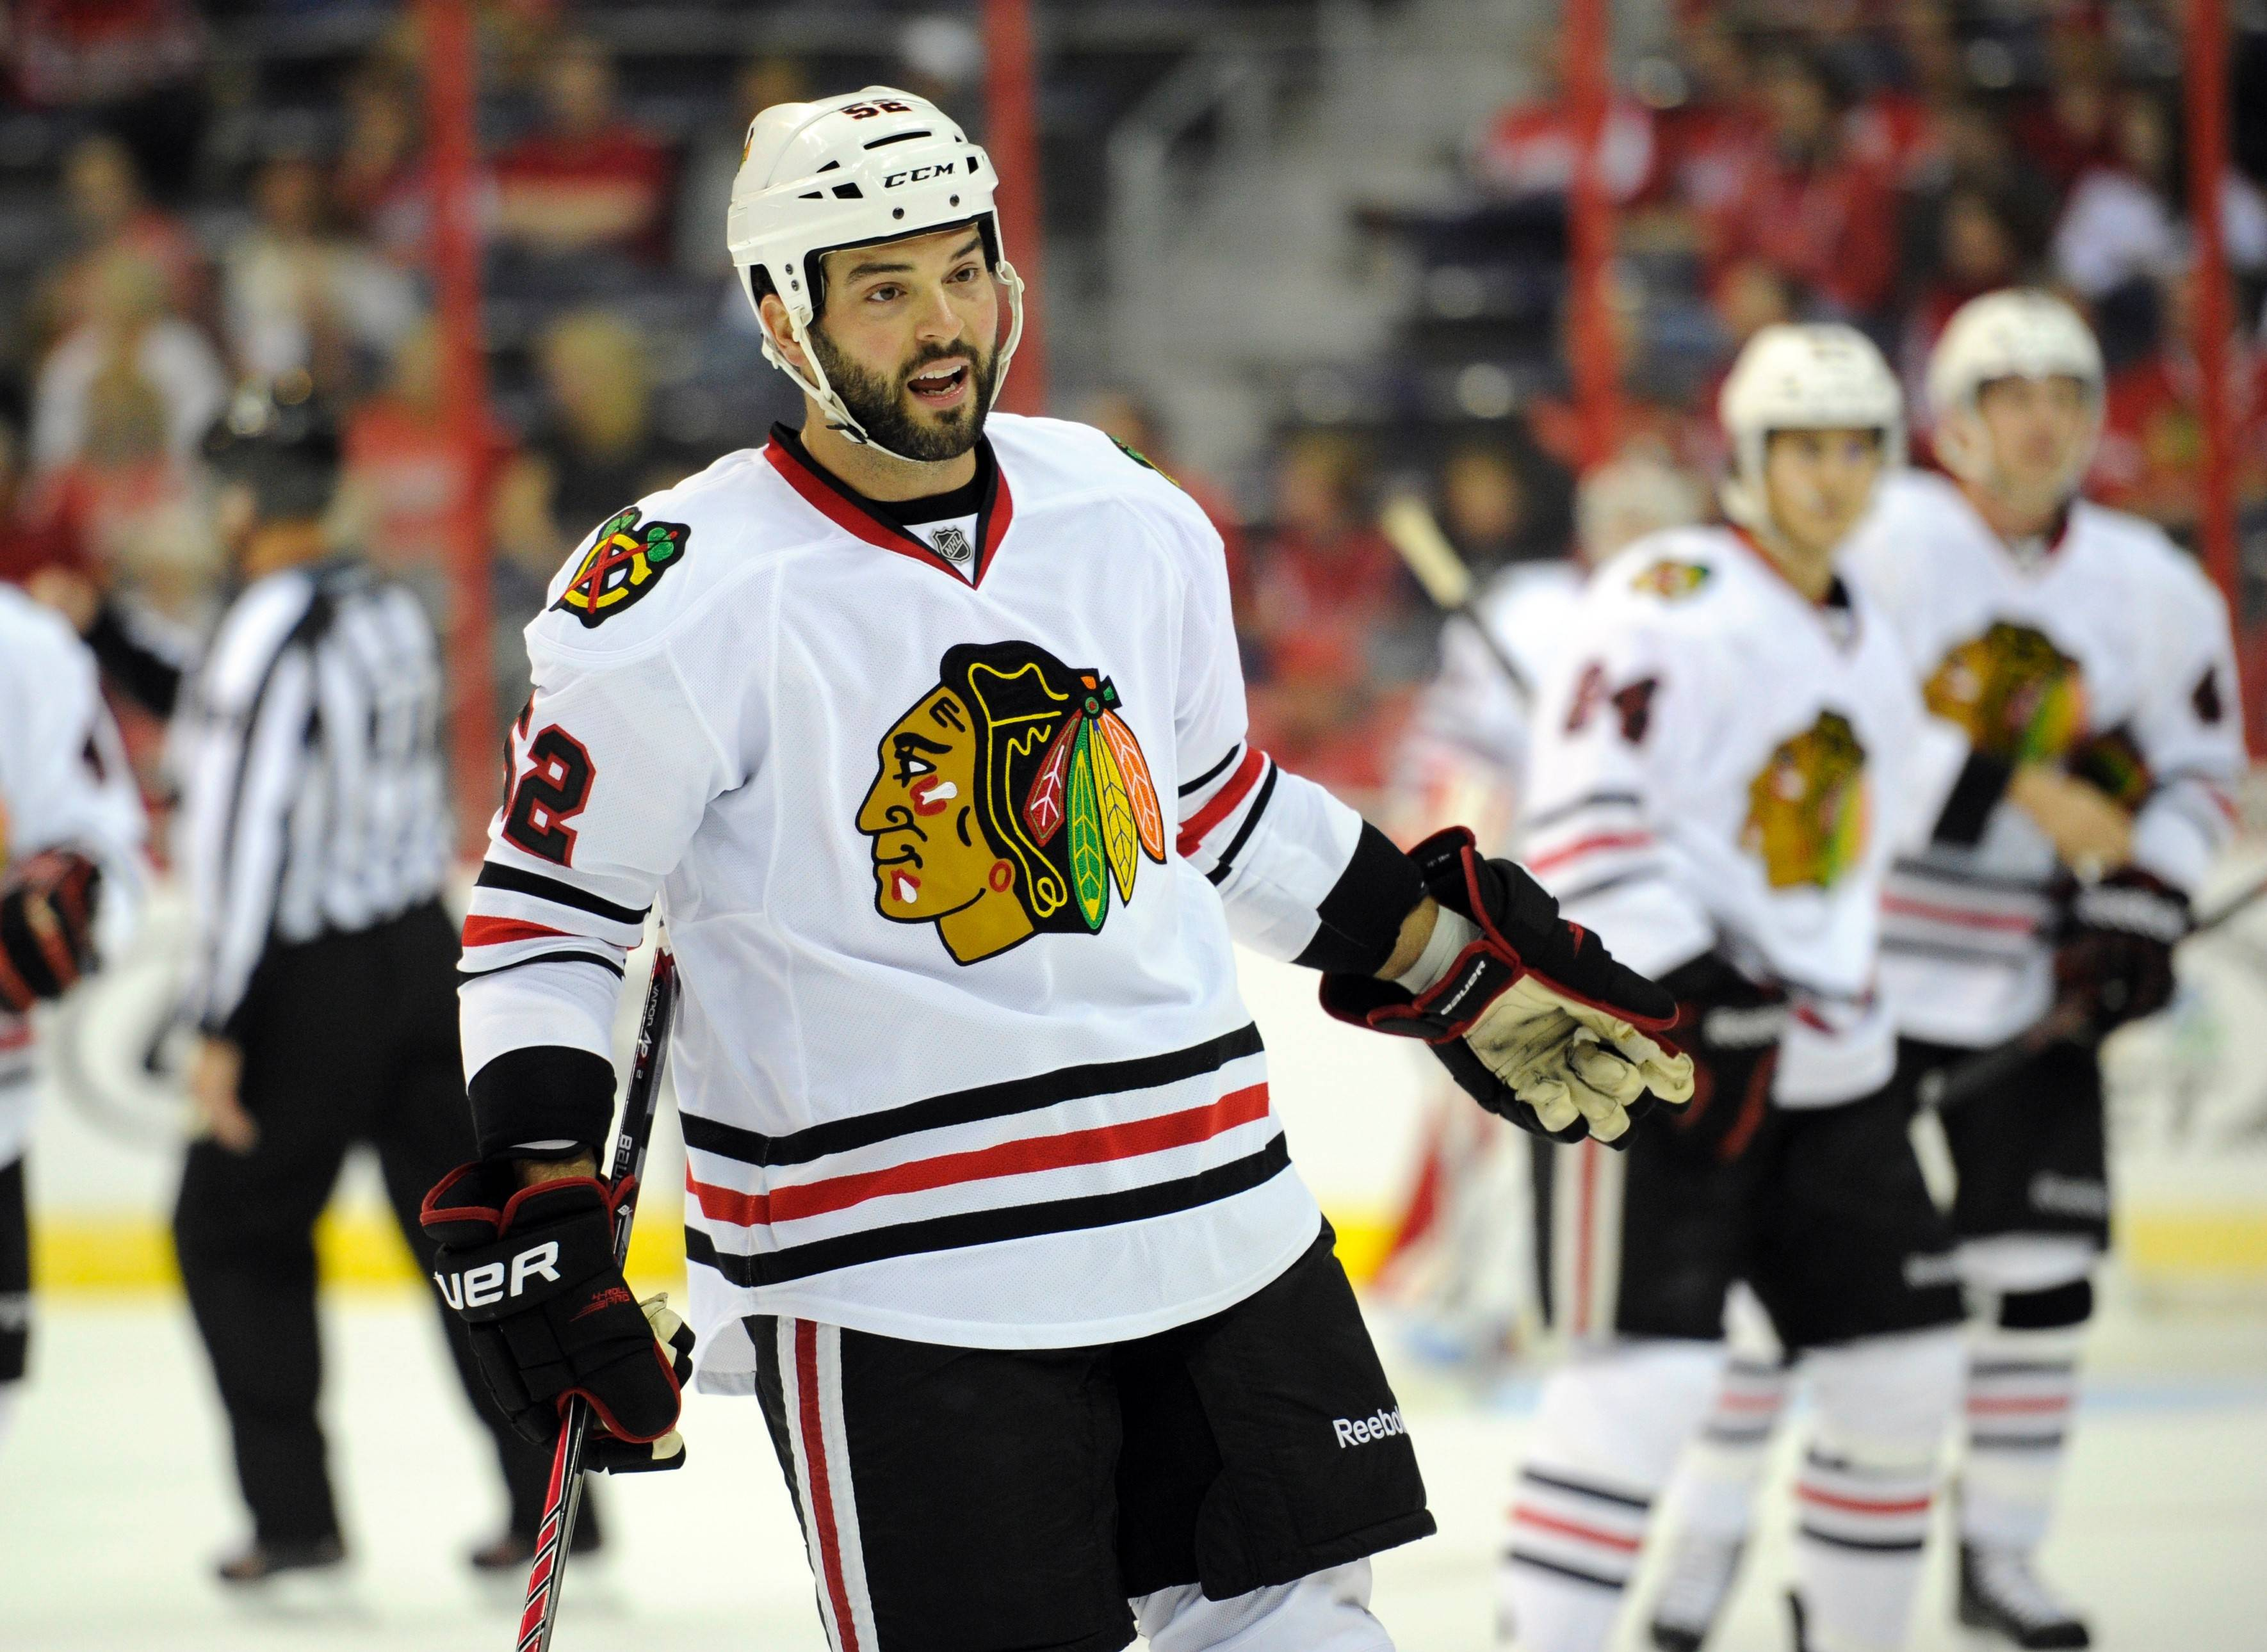 The Blackhawks have traded forward Brandon Bollig to the Calgary Flames for a third-round selection in the NHL draft.Bollig agreed to a three-year contract extension in March. He had seven goals and seven assists while playing in 82 games this season, and then had an assist in 15 playoff games.The Blackhawks used the draft pick, No. 83 overall, to take forward Matheson Iacopelli